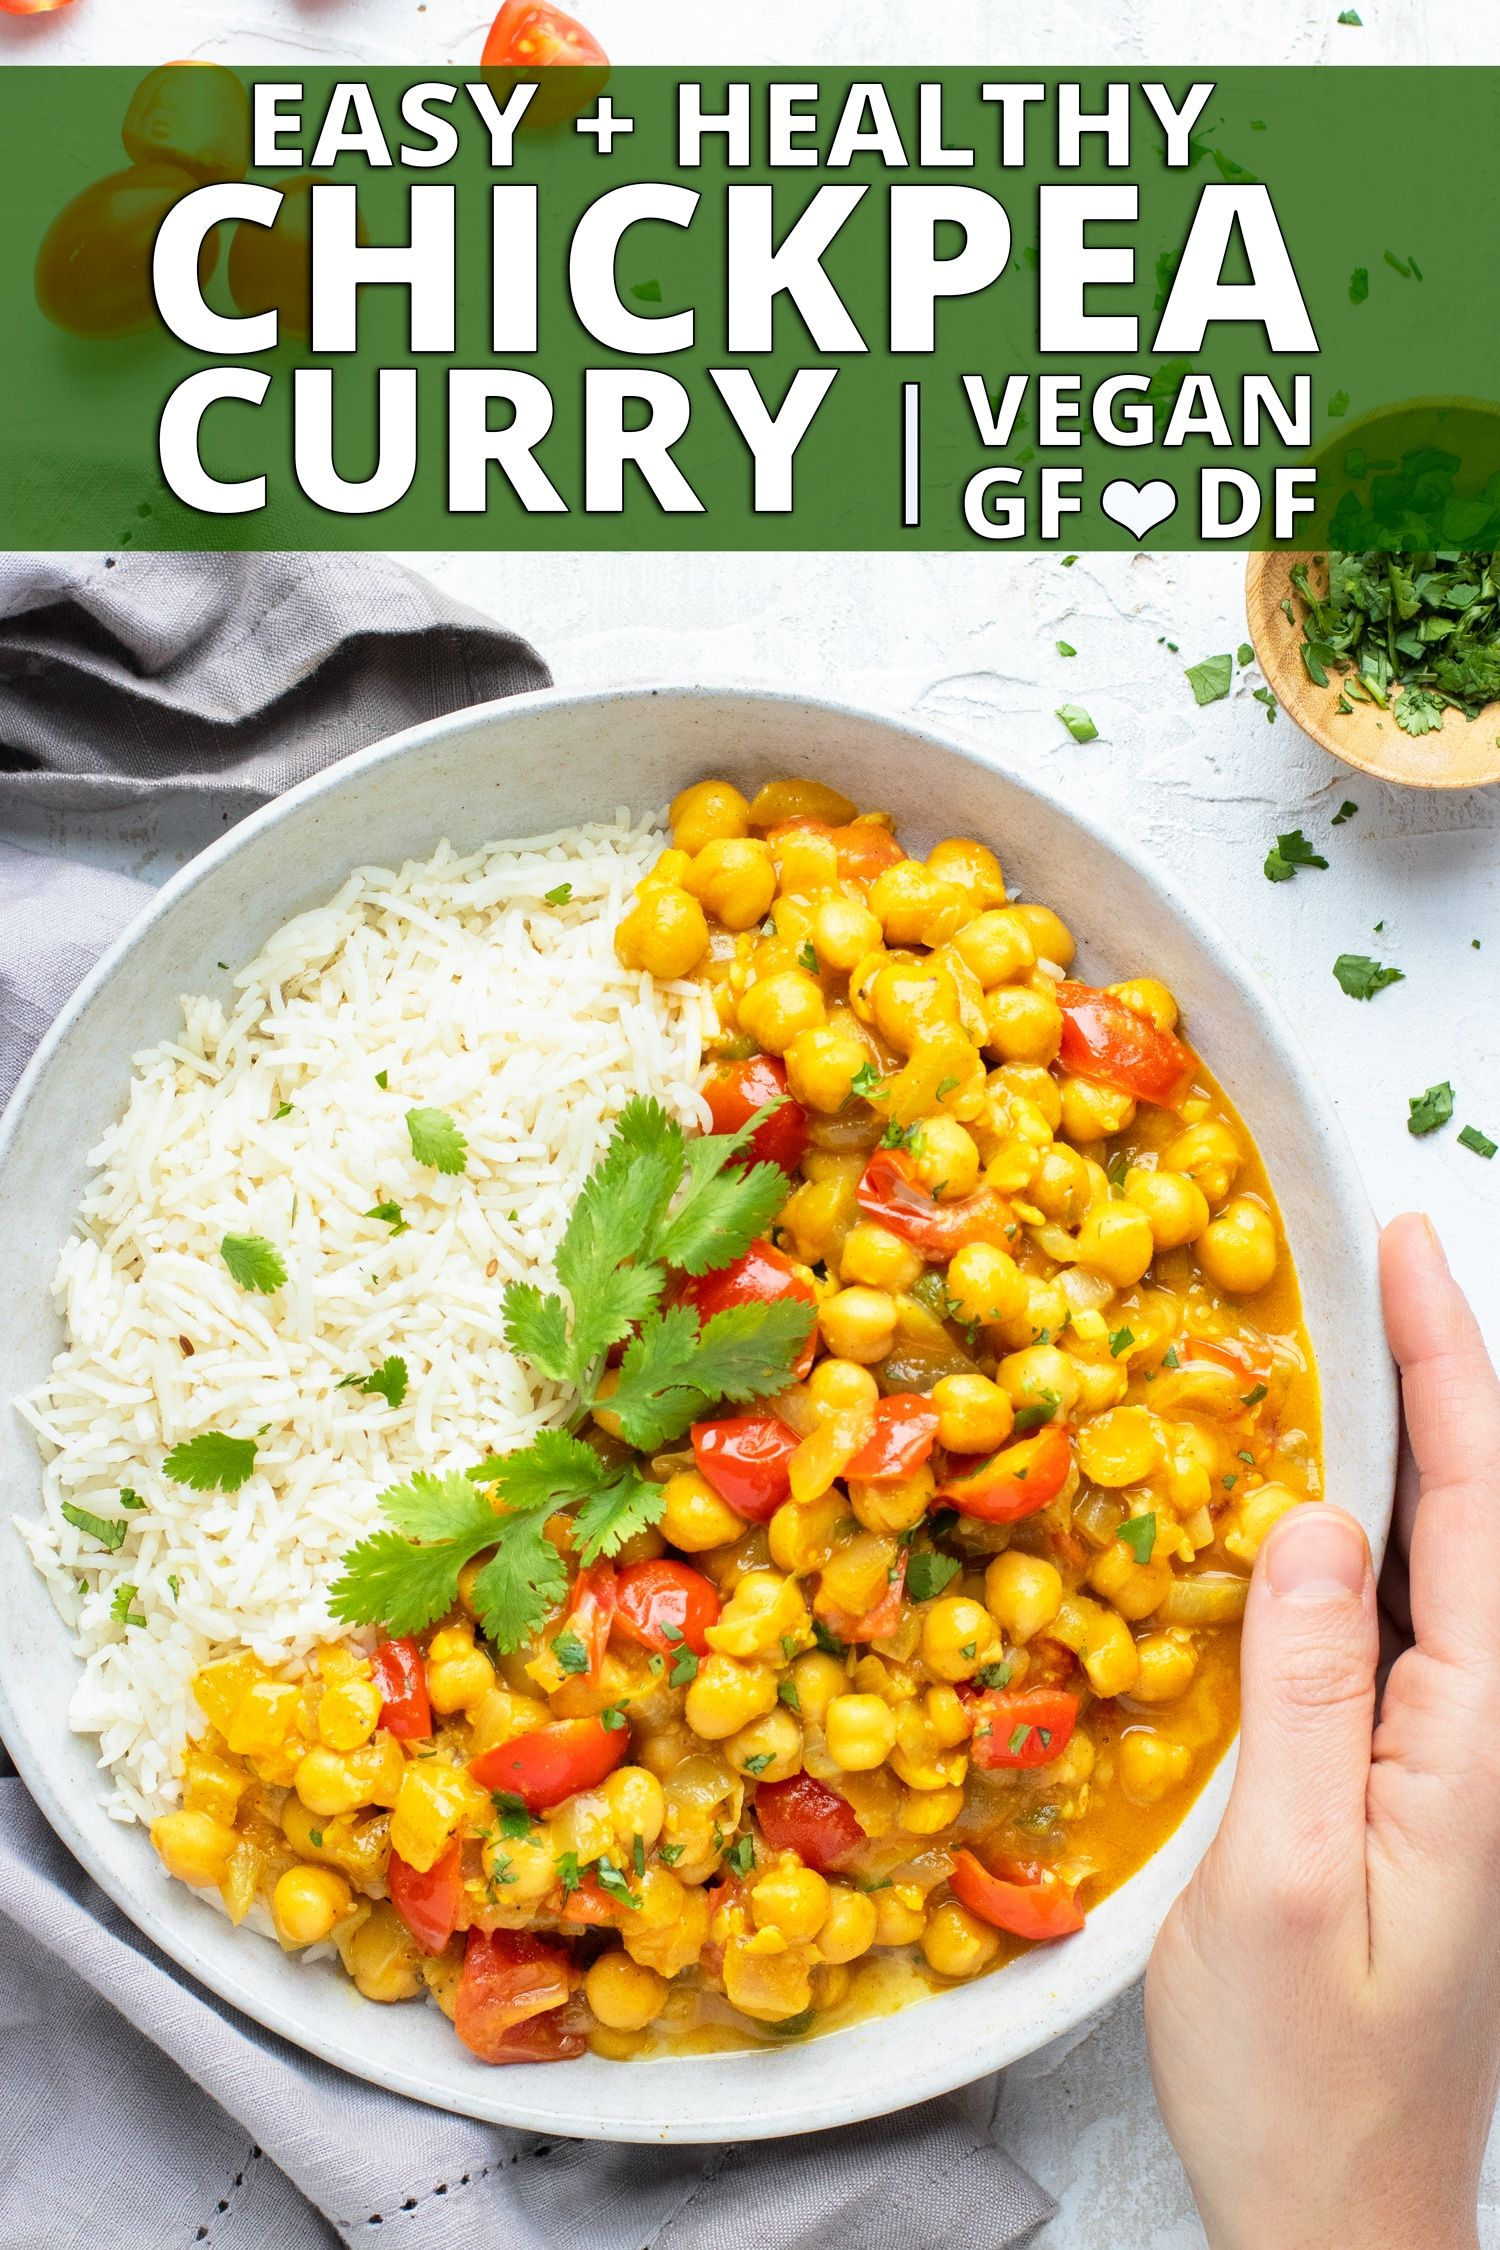 Chickpea Curry Recipe Vegan